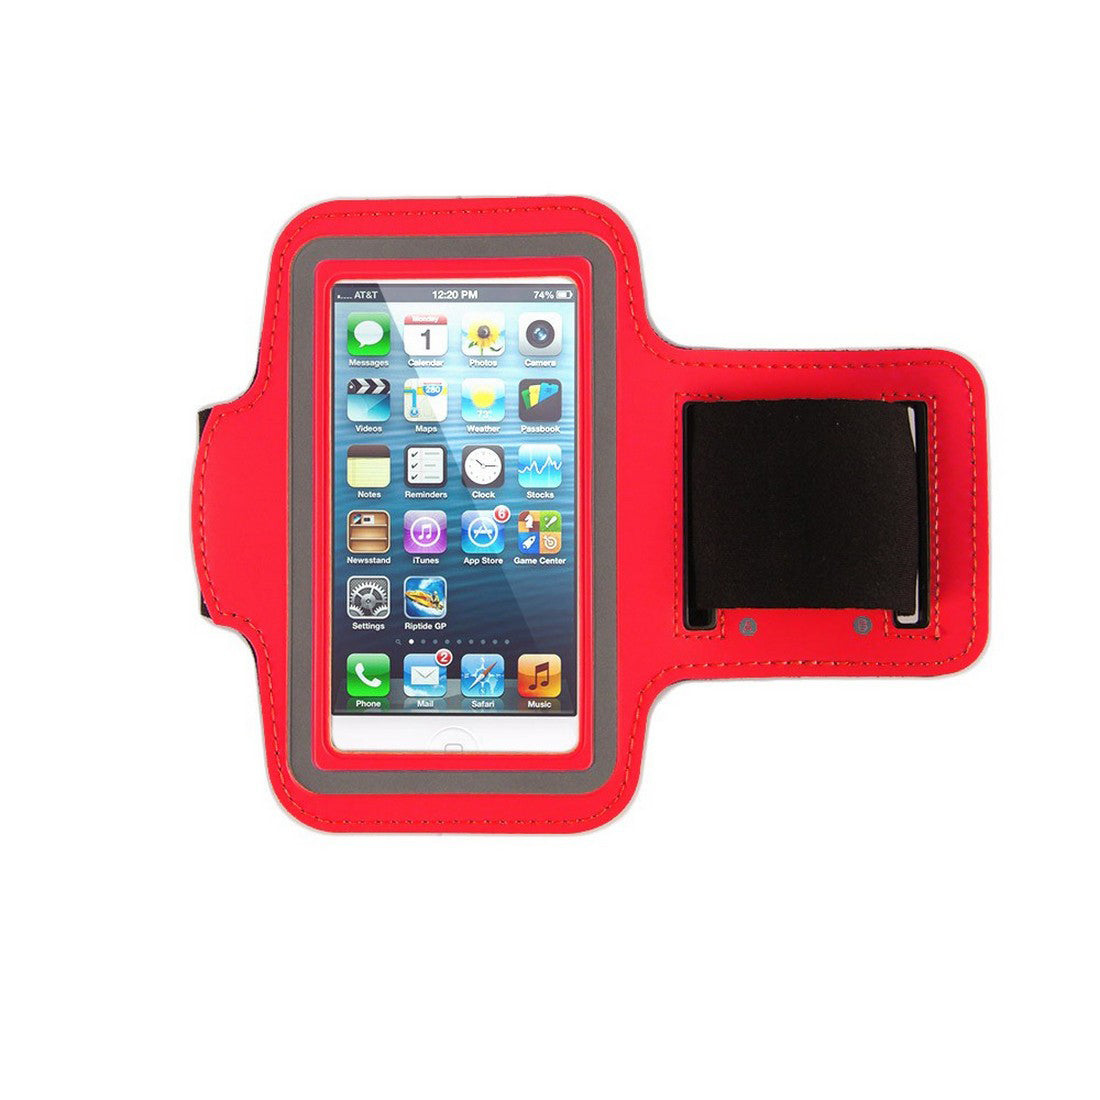 Neoprene Armband Size 01 For Iphone 4G/4S/5/5C/5S & I touch 5th Gen & Samsung i437/s4M & LG W7 & kyocera C6721/C5120 & Nokia 521 Red